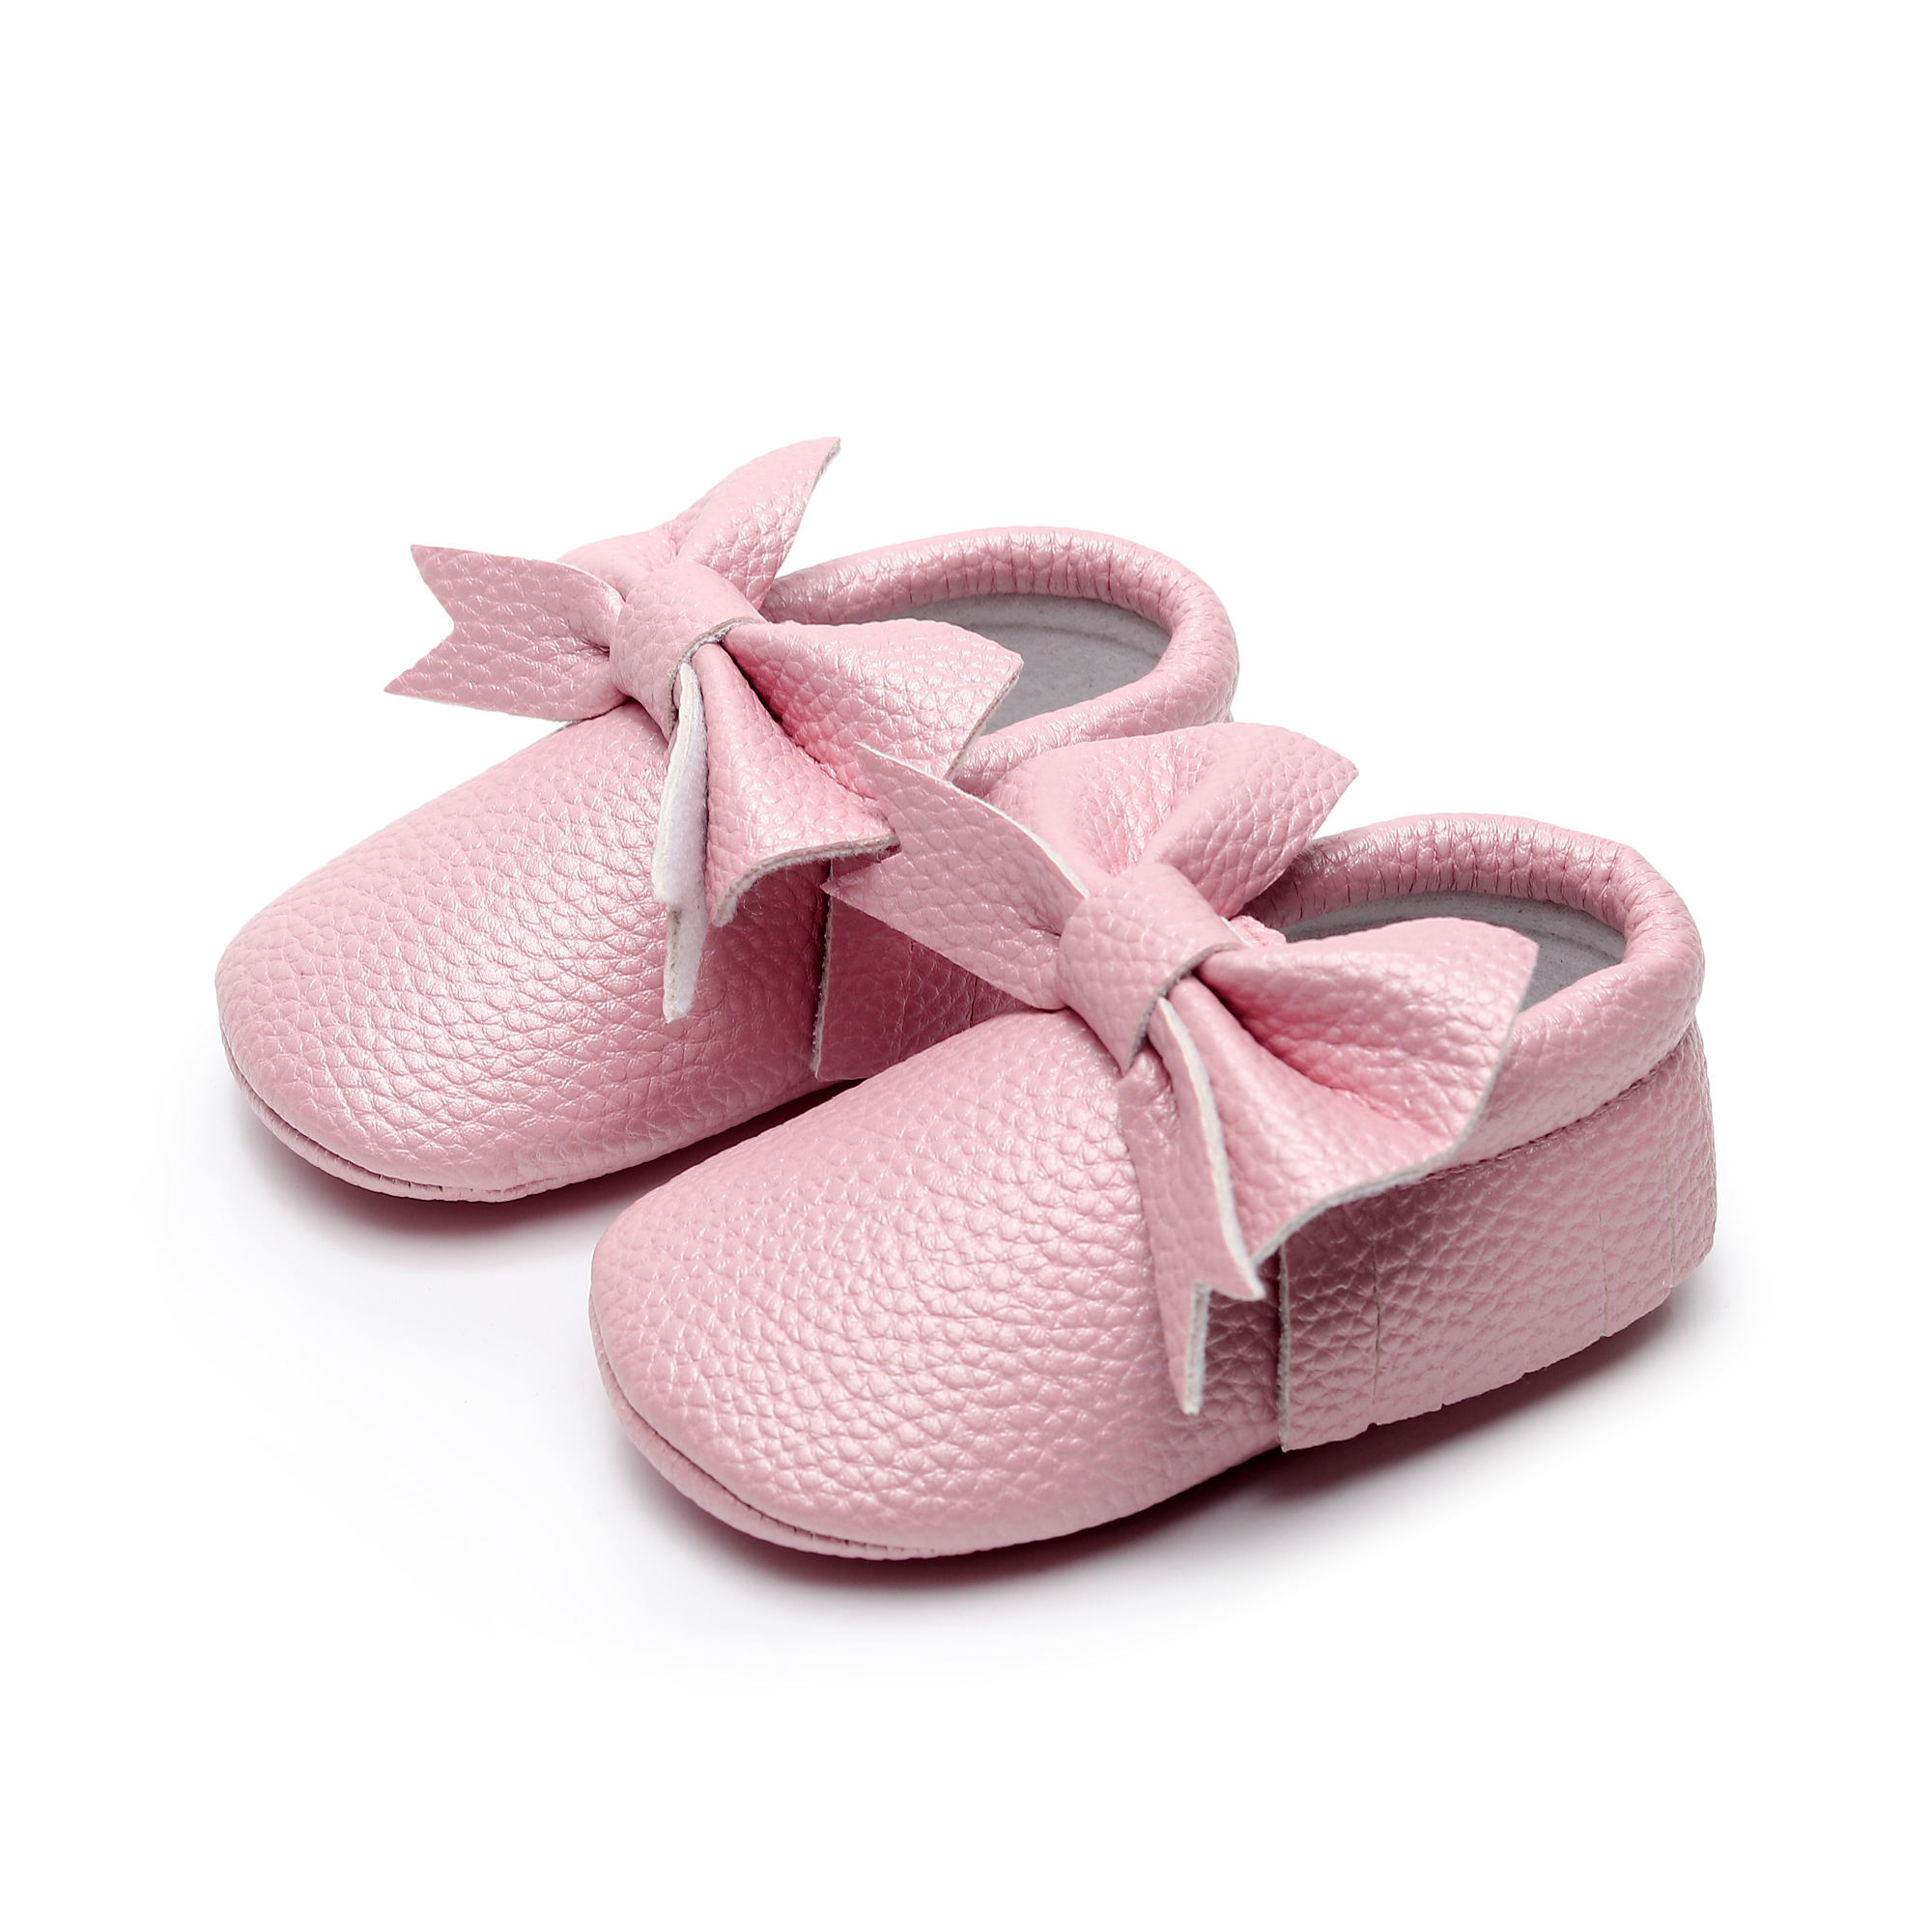 PU Leather Baby Boy Girl Baby Moccasins Shoes Bow Fringe Soft Soled Non-slip Footwear Crib Shoes